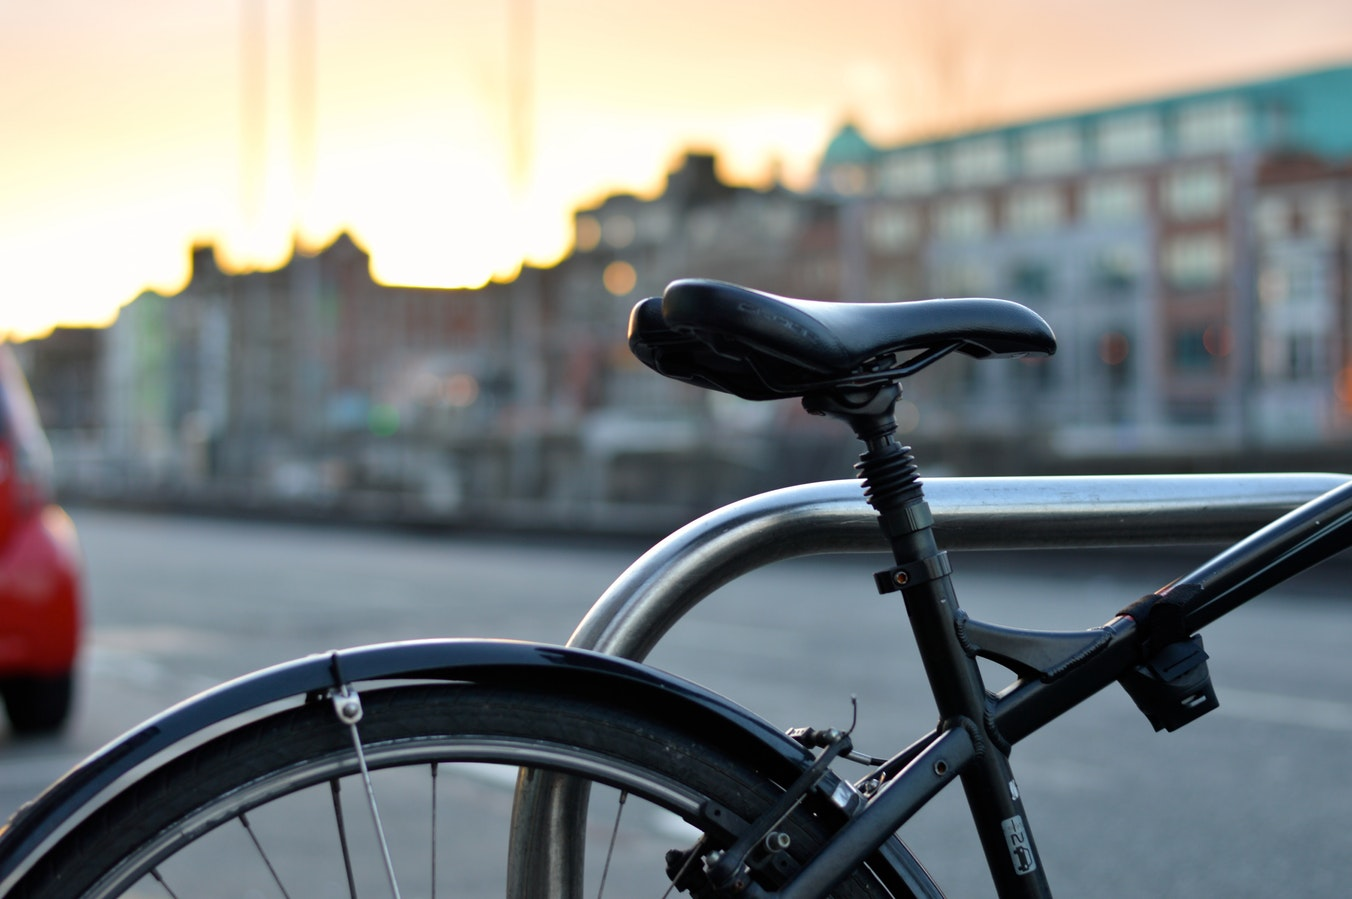 Bicycle fitment is a key element to enjoying your bicycle.